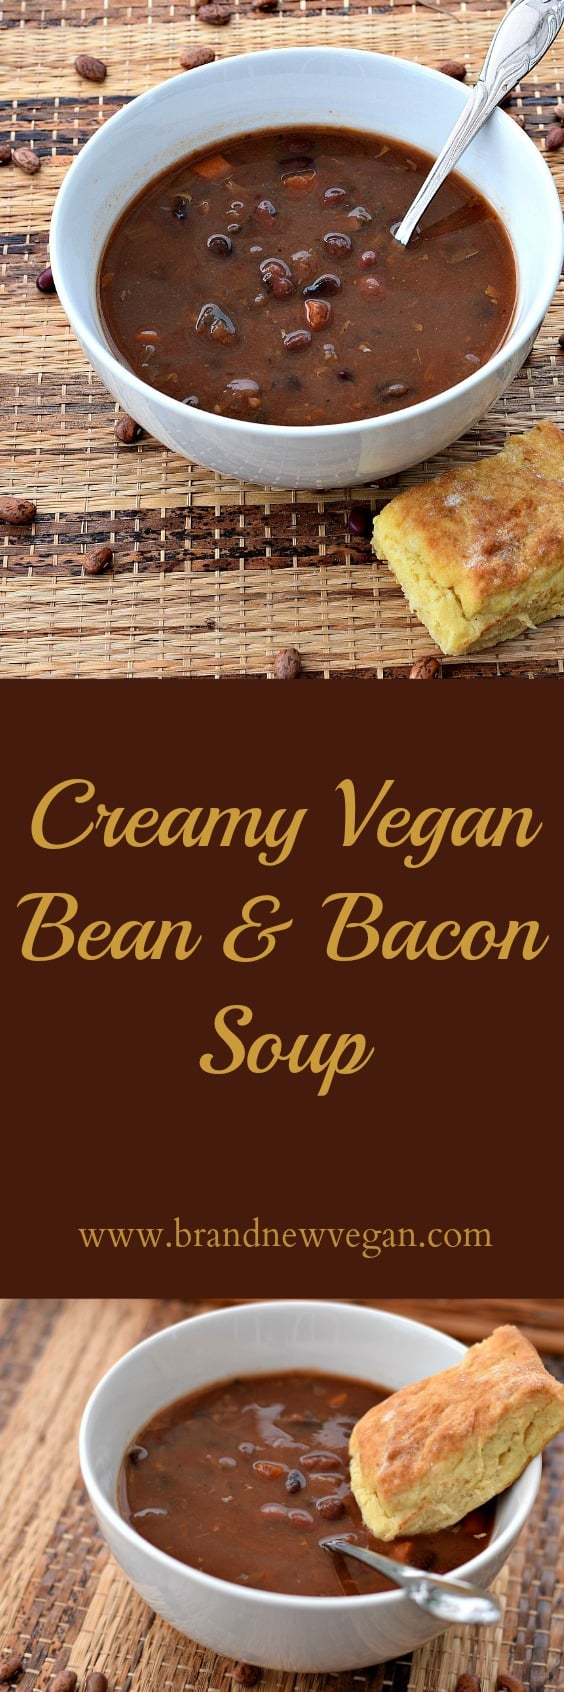 Bean and Bacon Soup remins me of those little cans of Campbell's Soup ...